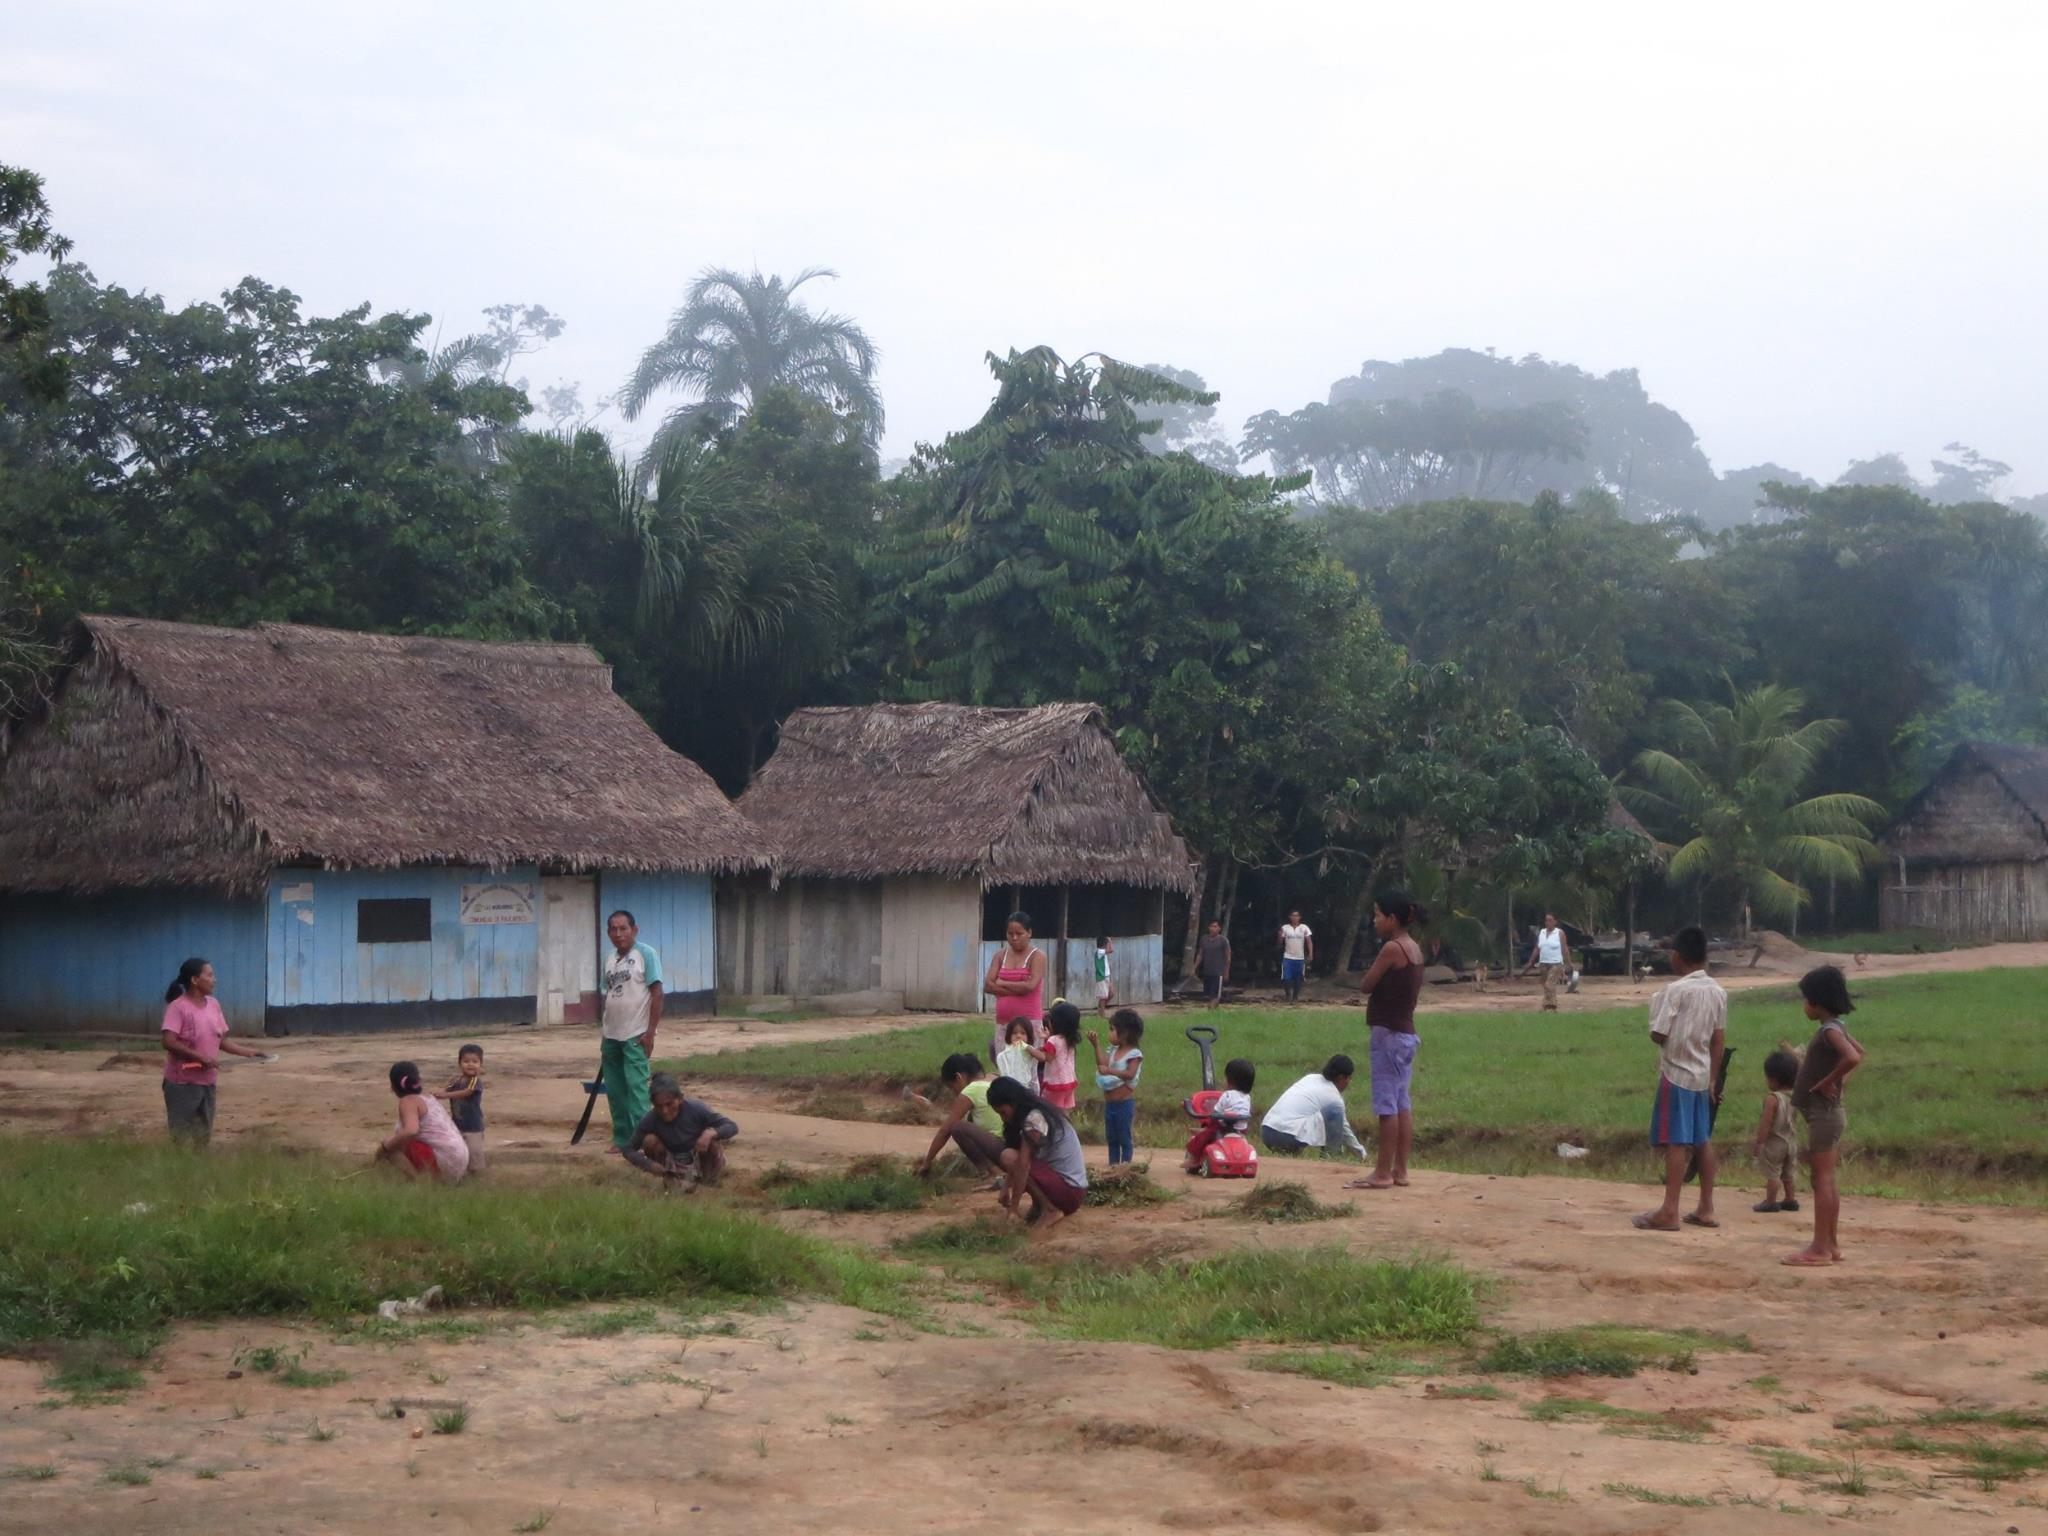 Villagers at work